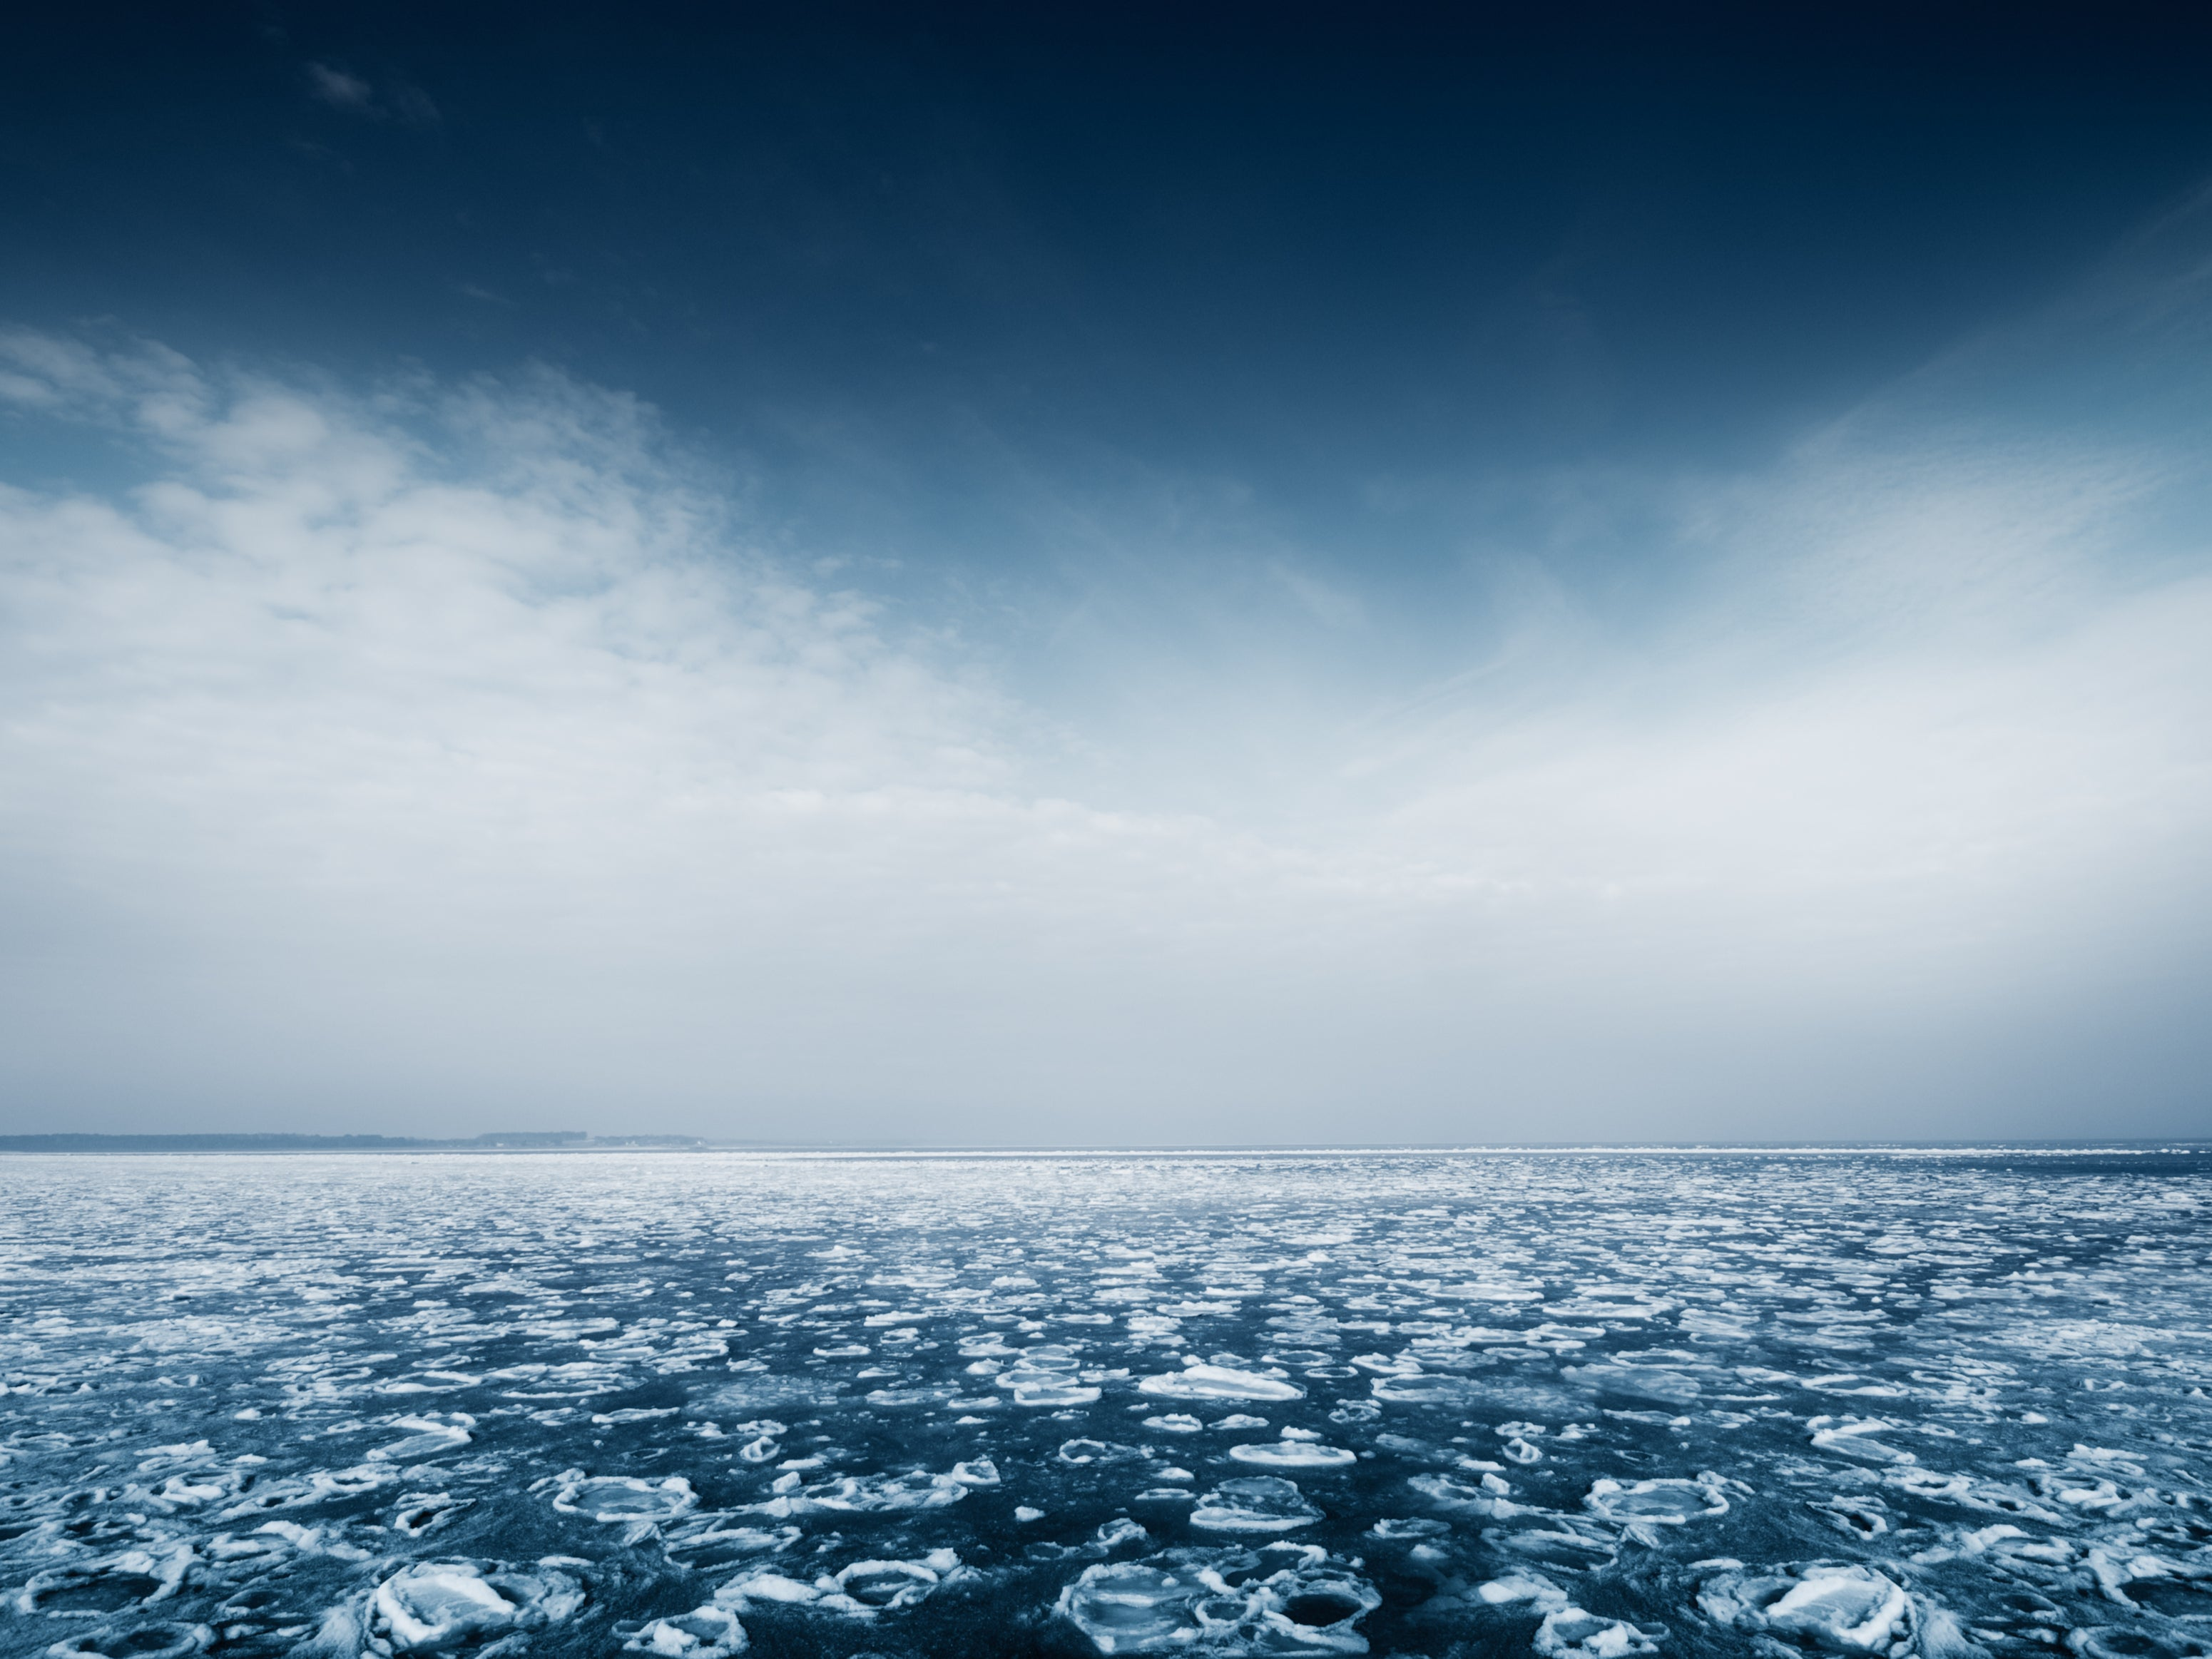 Growing 'heat blob' from Atlantic driving sea ice loss in Arctic, study says